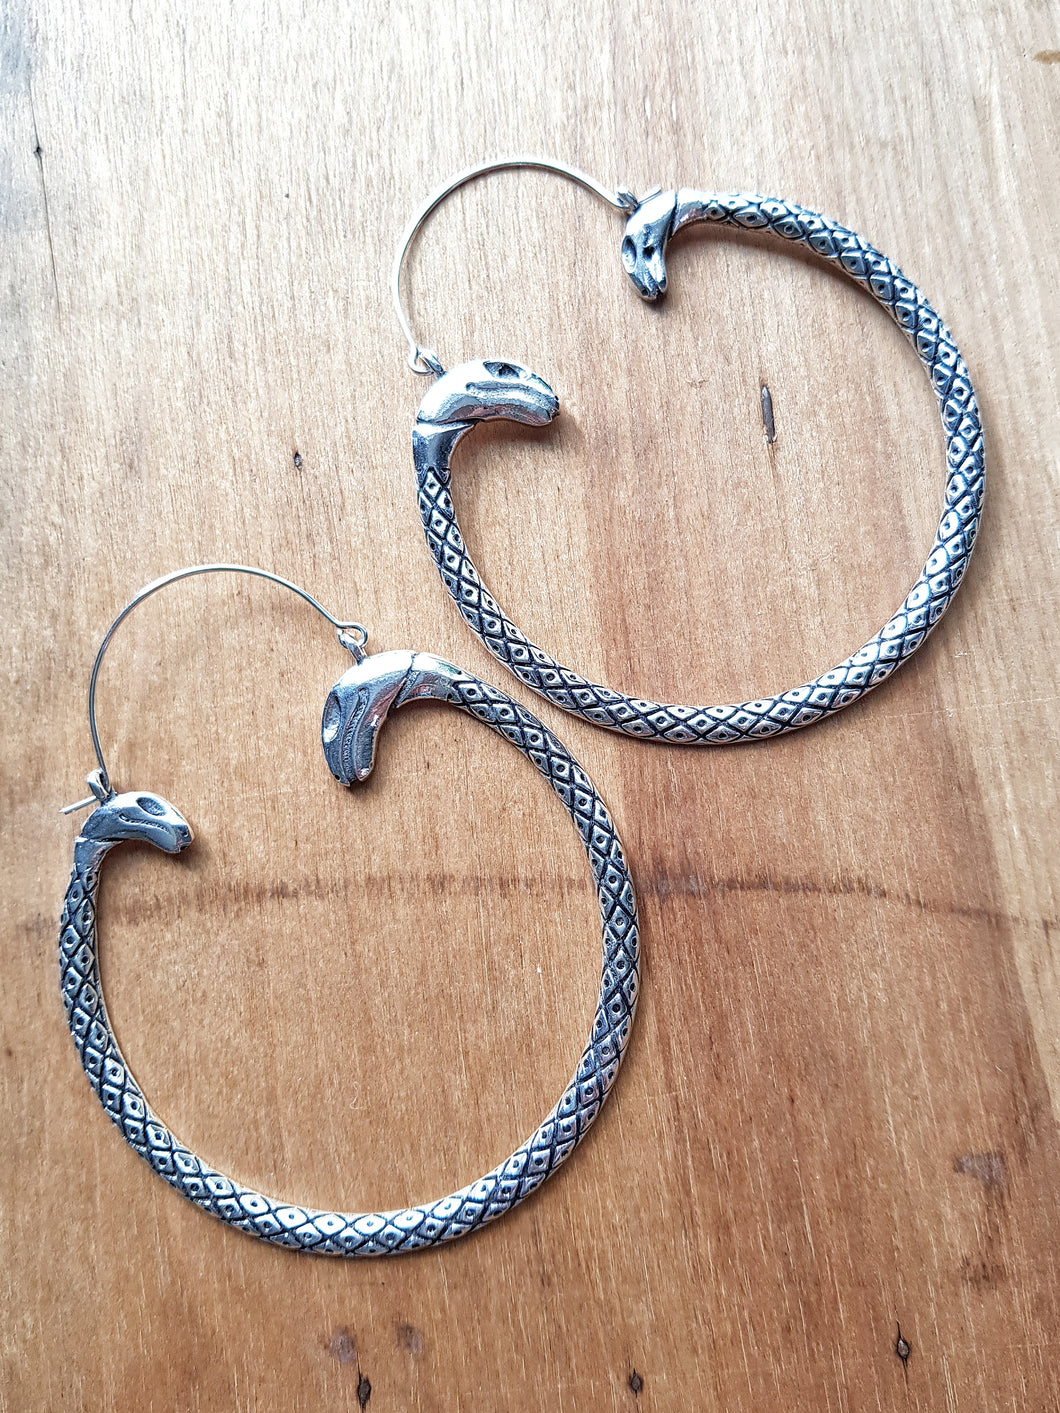 Serpent Statement Earrings - Silver Plated Brass